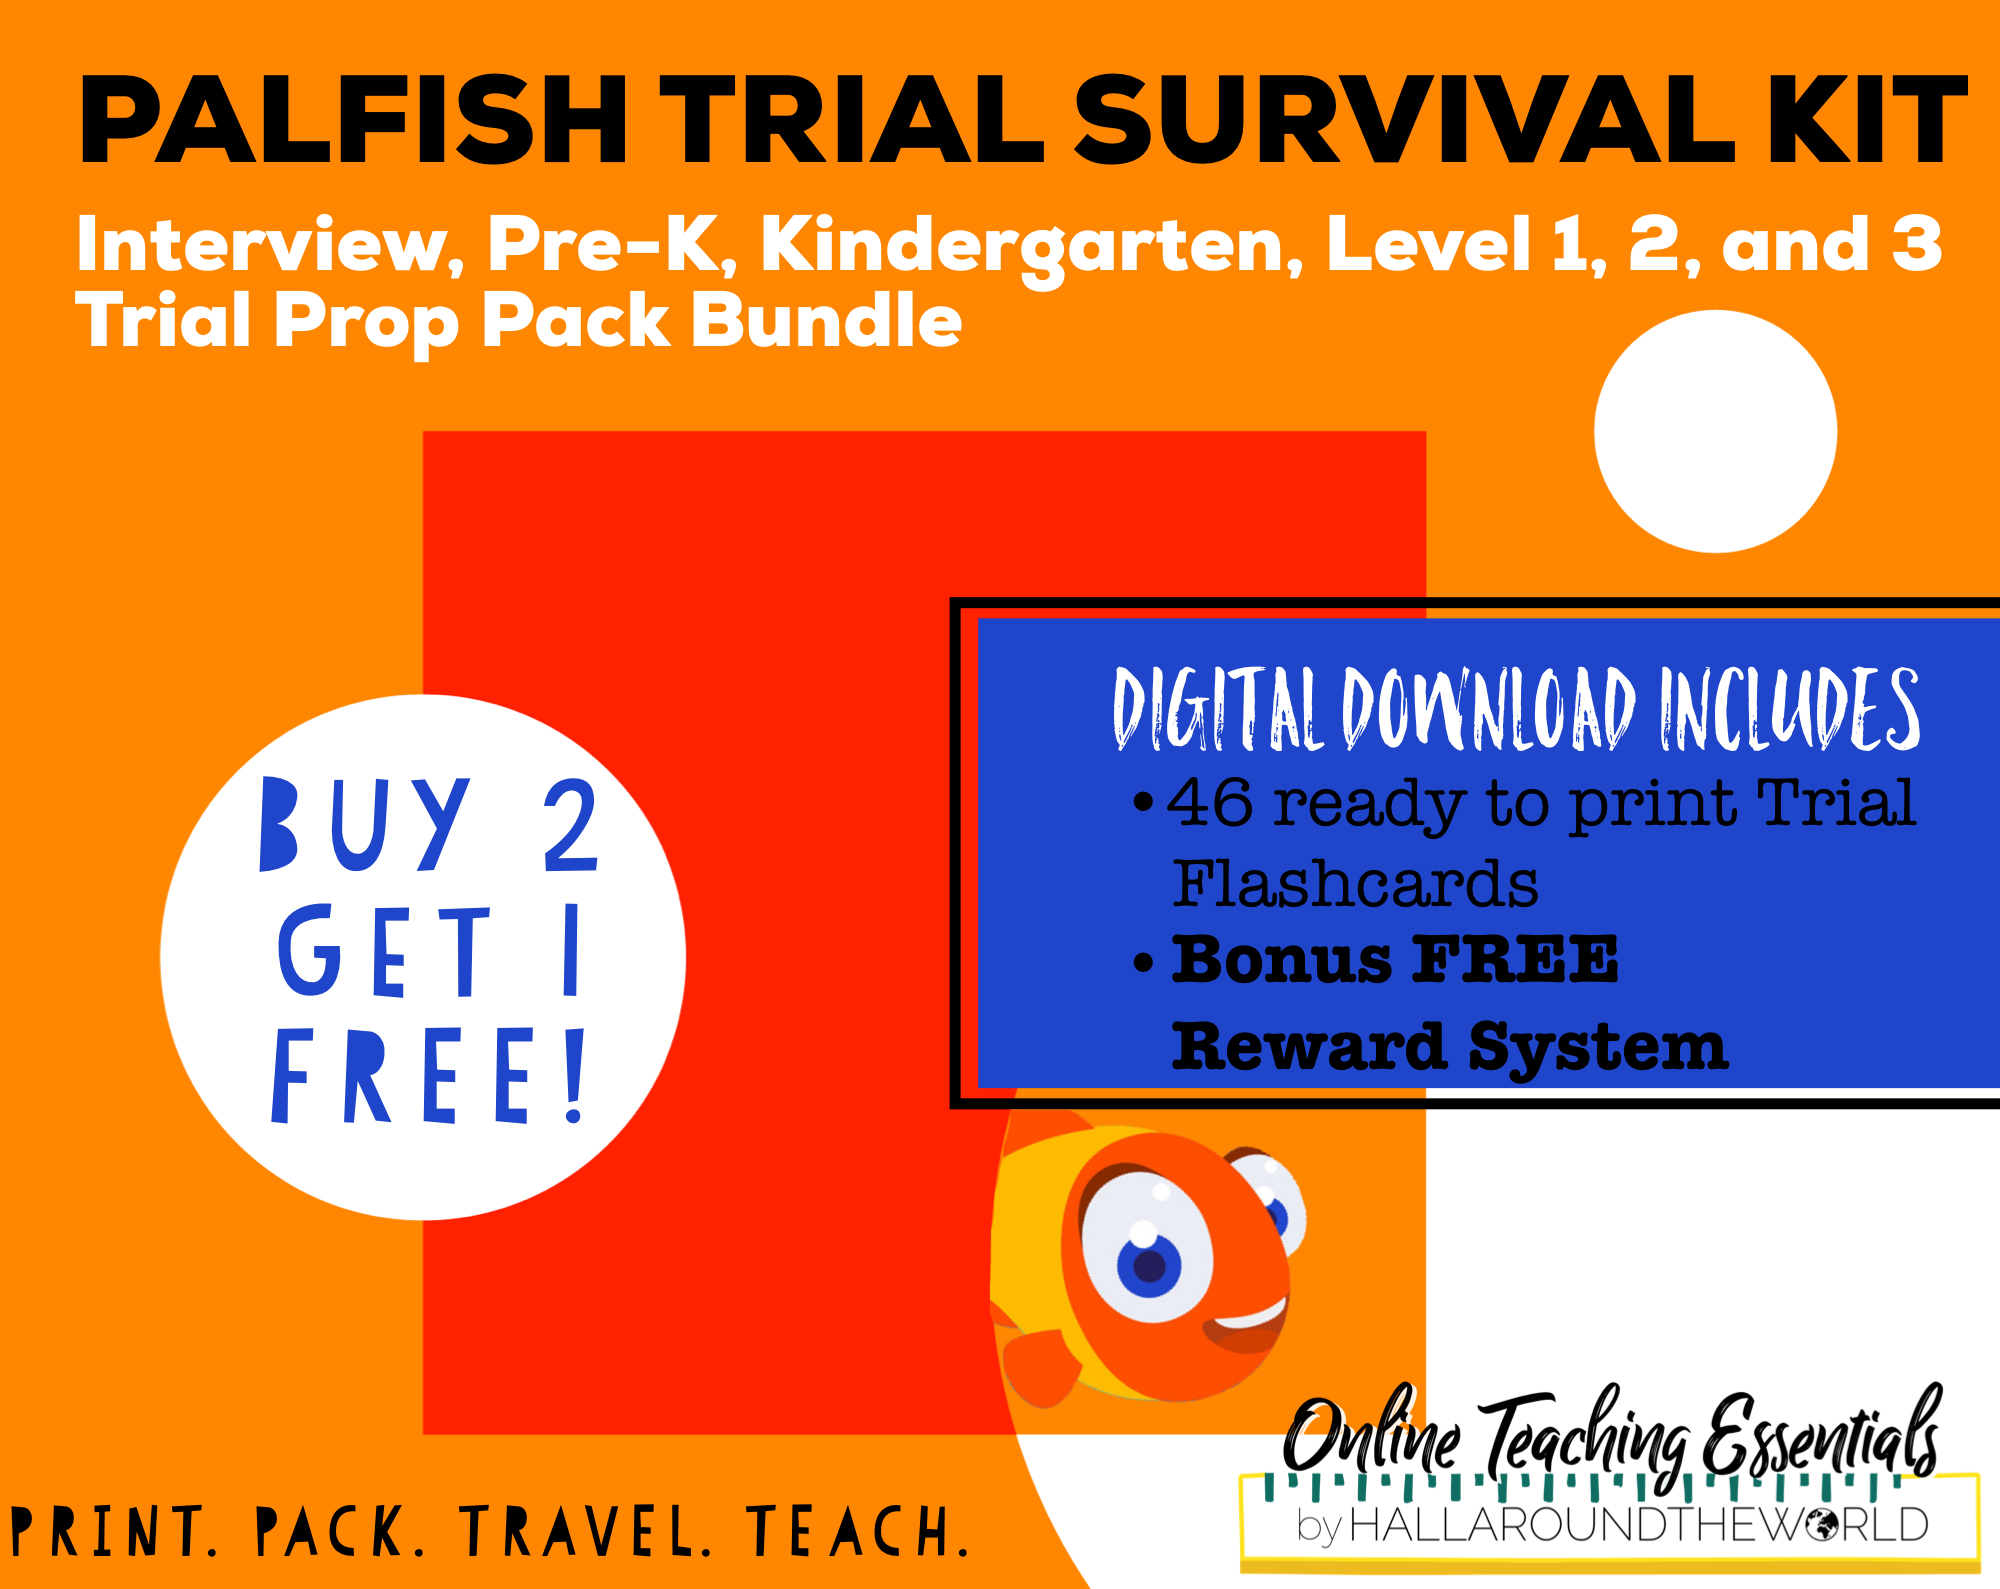 PALFISH TRIAL SURVIVAL KIT - The Trial Survival Kit contains everything PalFish Teachers need for their demo interview, Pre-K, Kindergarten, Level 1, 2, and 3 trial classes.It includes 46 ready to print vocabulary flashcards and a free